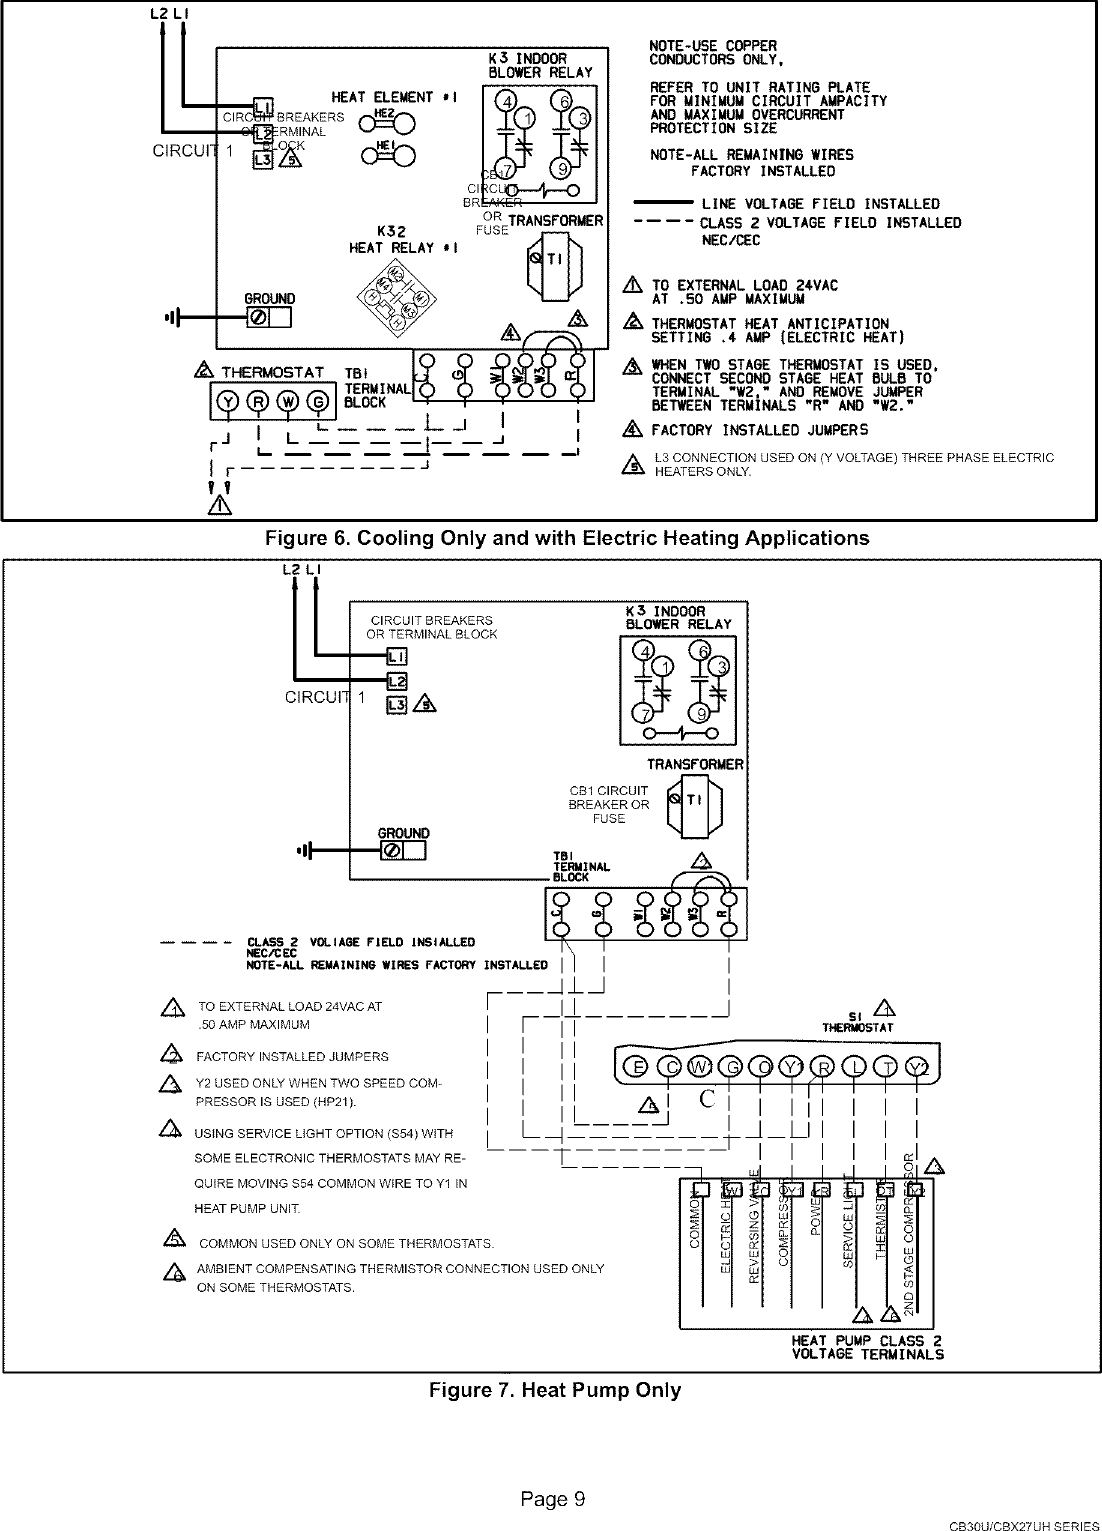 Lennox Air Handler Indoor Blowerevap Manual L0805327 Mm 2 58t Wiring Diagram For Thermostat Page 9 Of 12